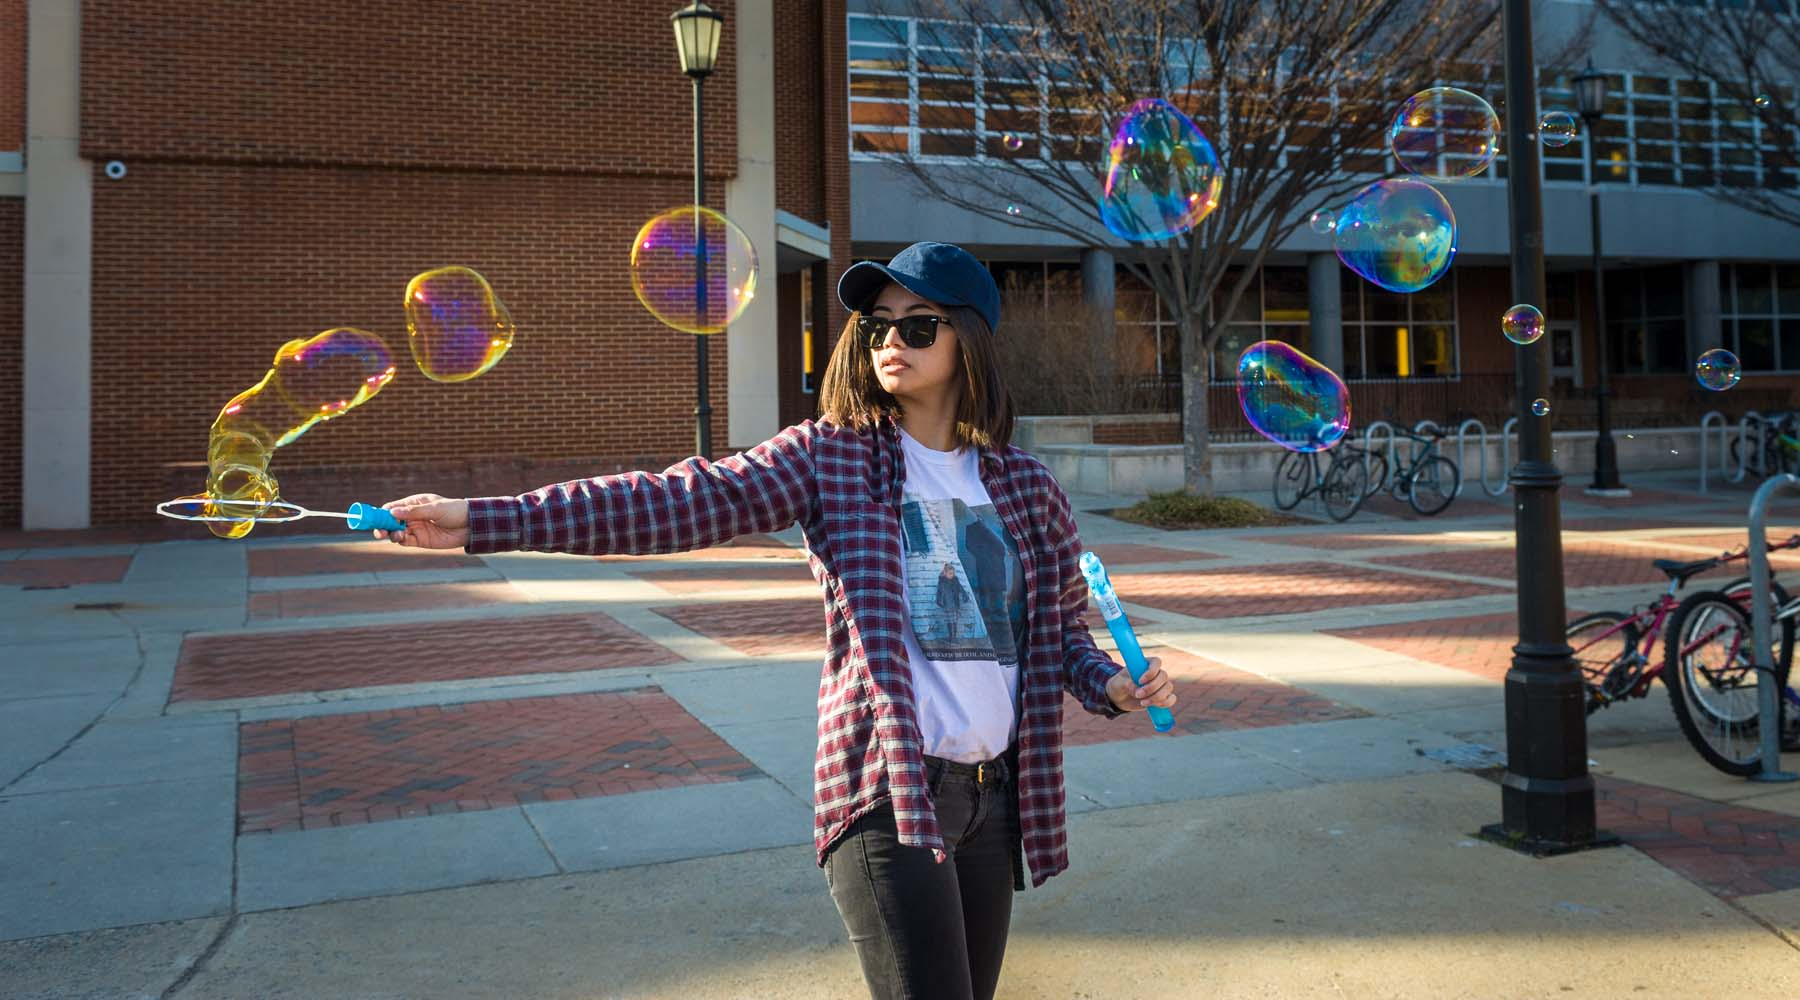 Student waving bubble wand in Shafer Court